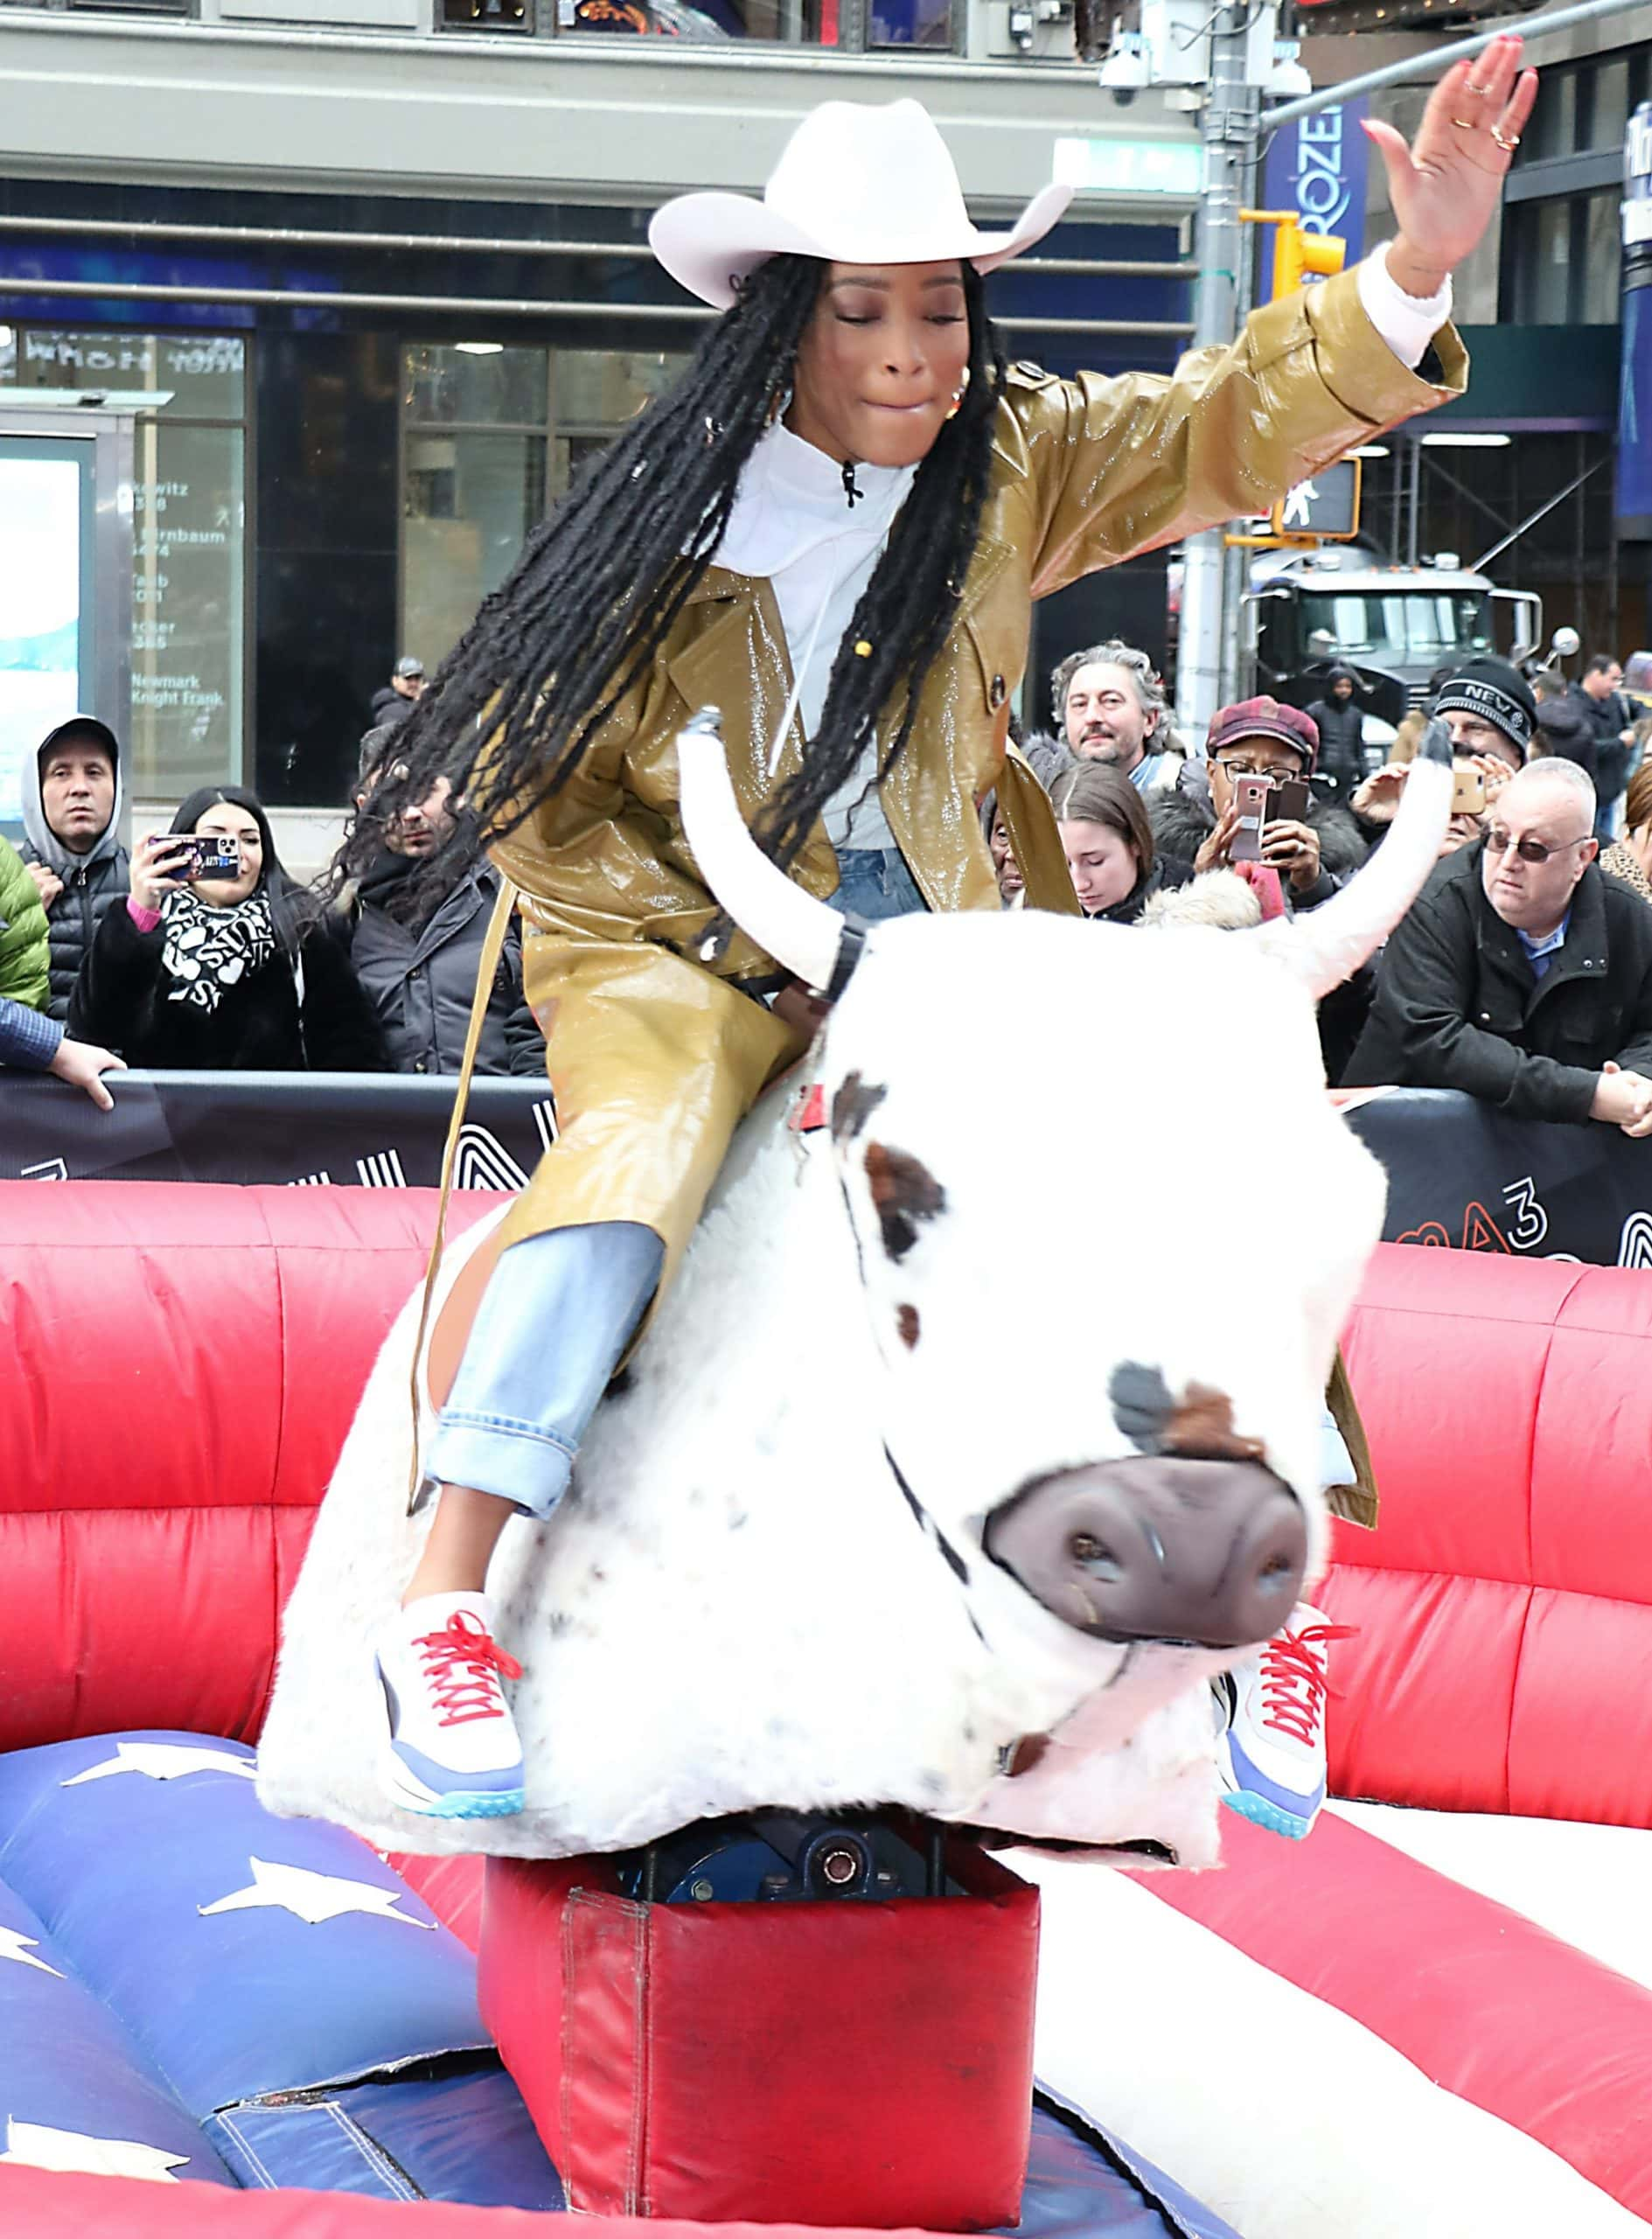 Keke Palmer rocks a western chic look as she rides a mechanical bull for Good Morning America